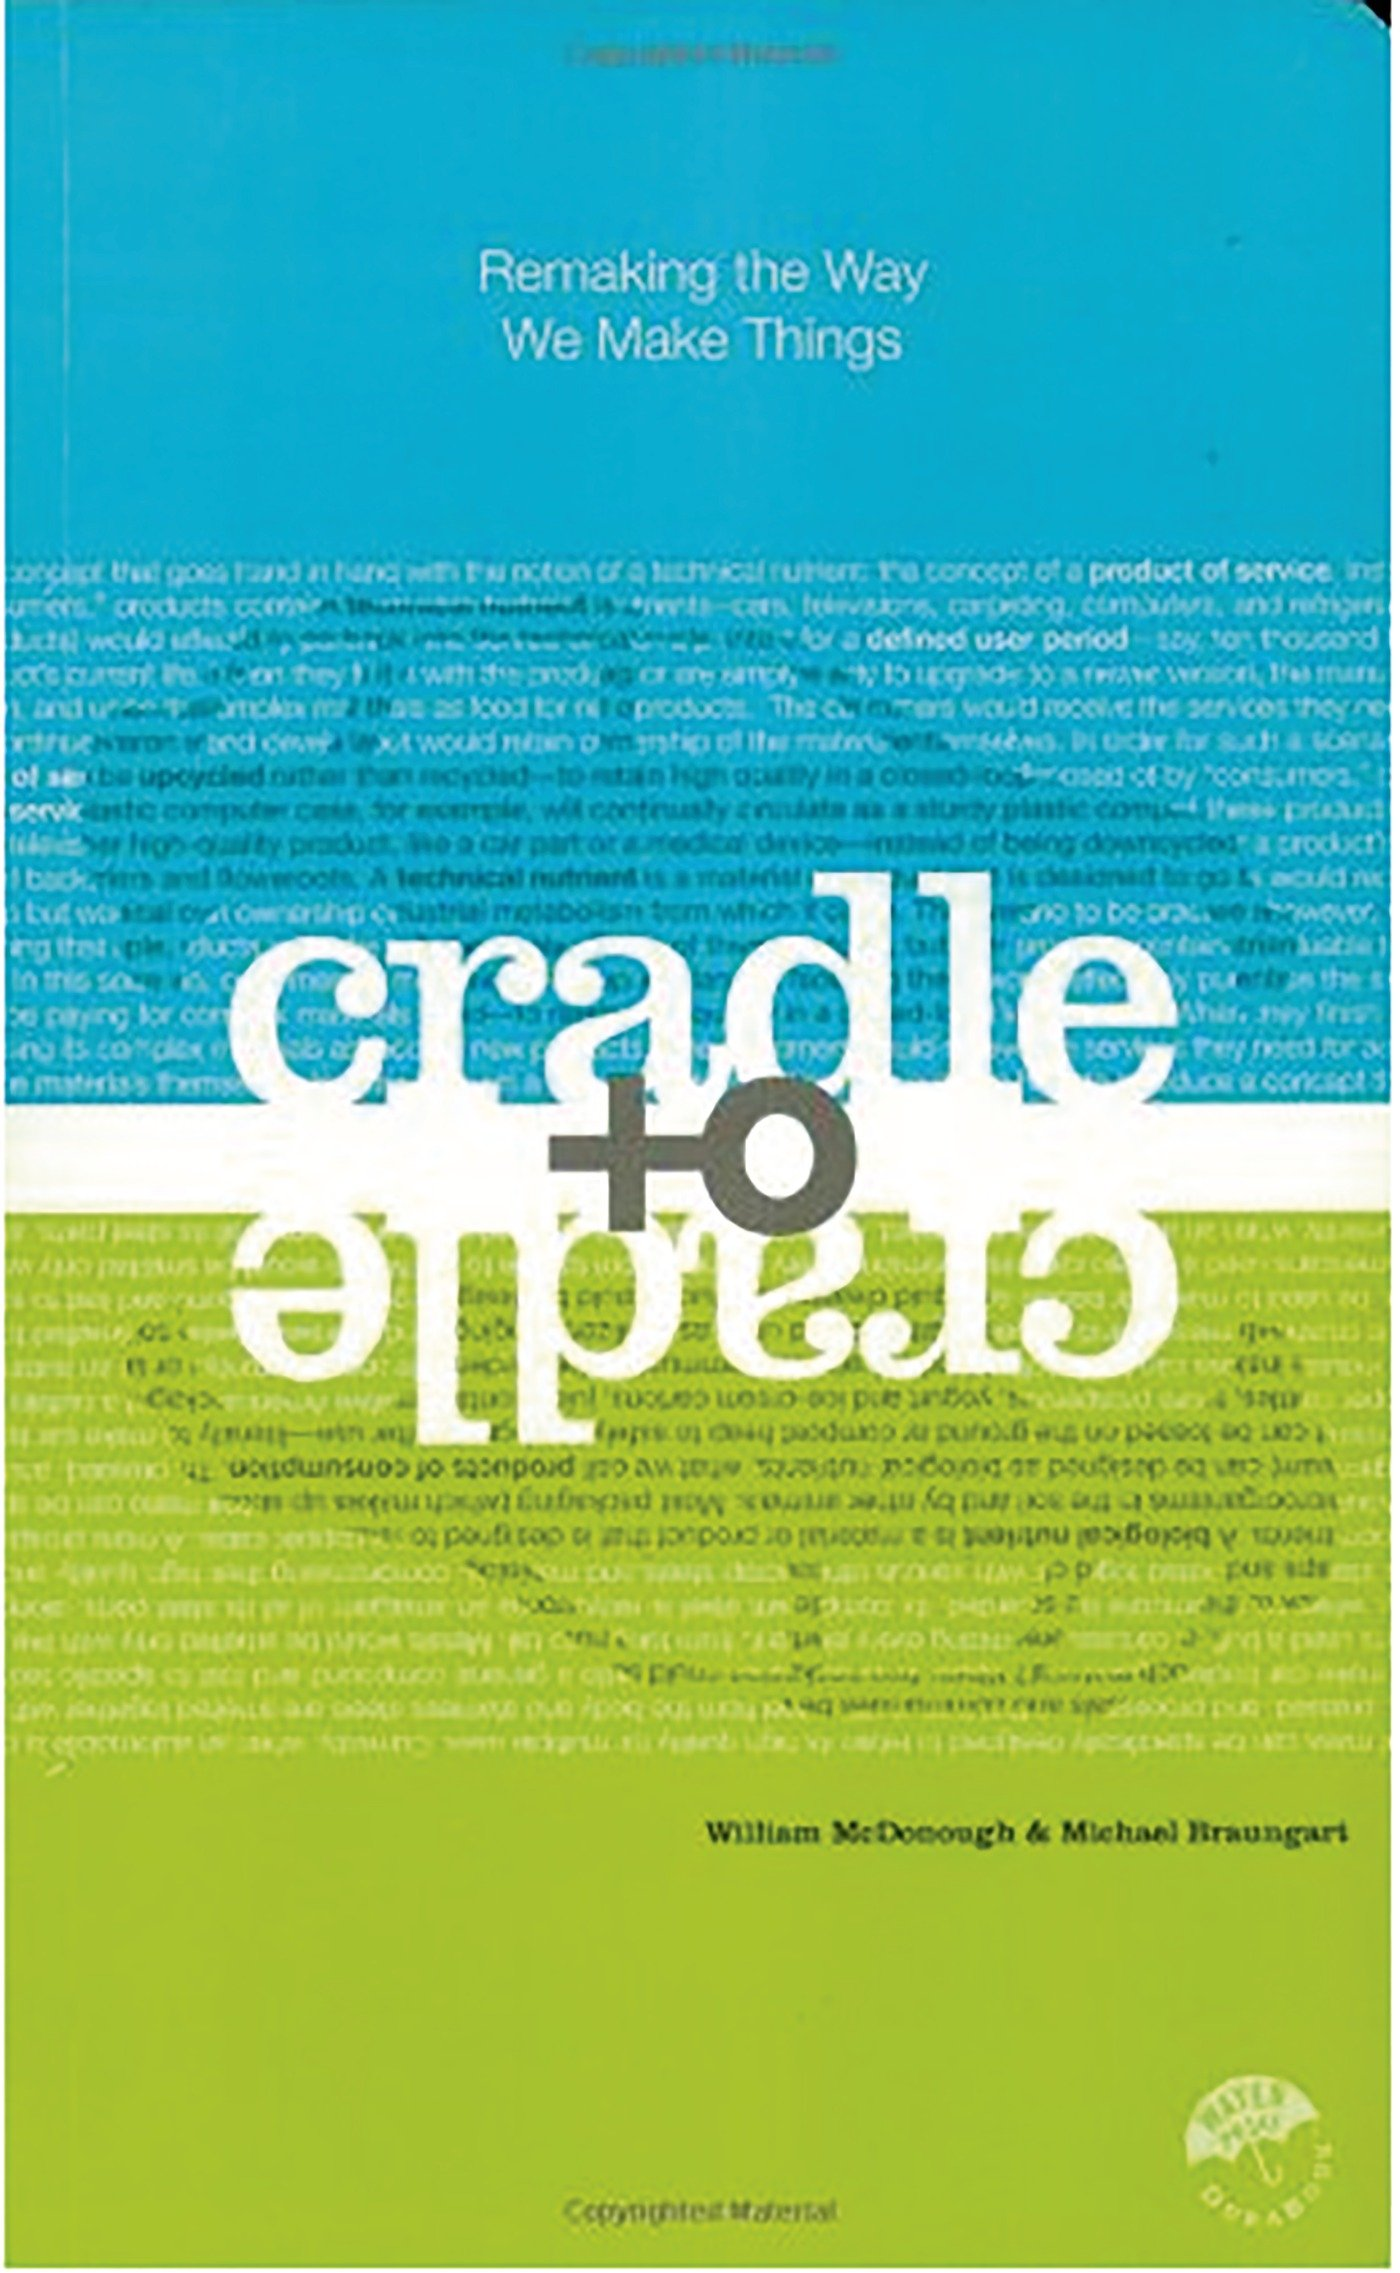 Cradle_to_Cradle_Remaking_the_Way_We_Make_Things